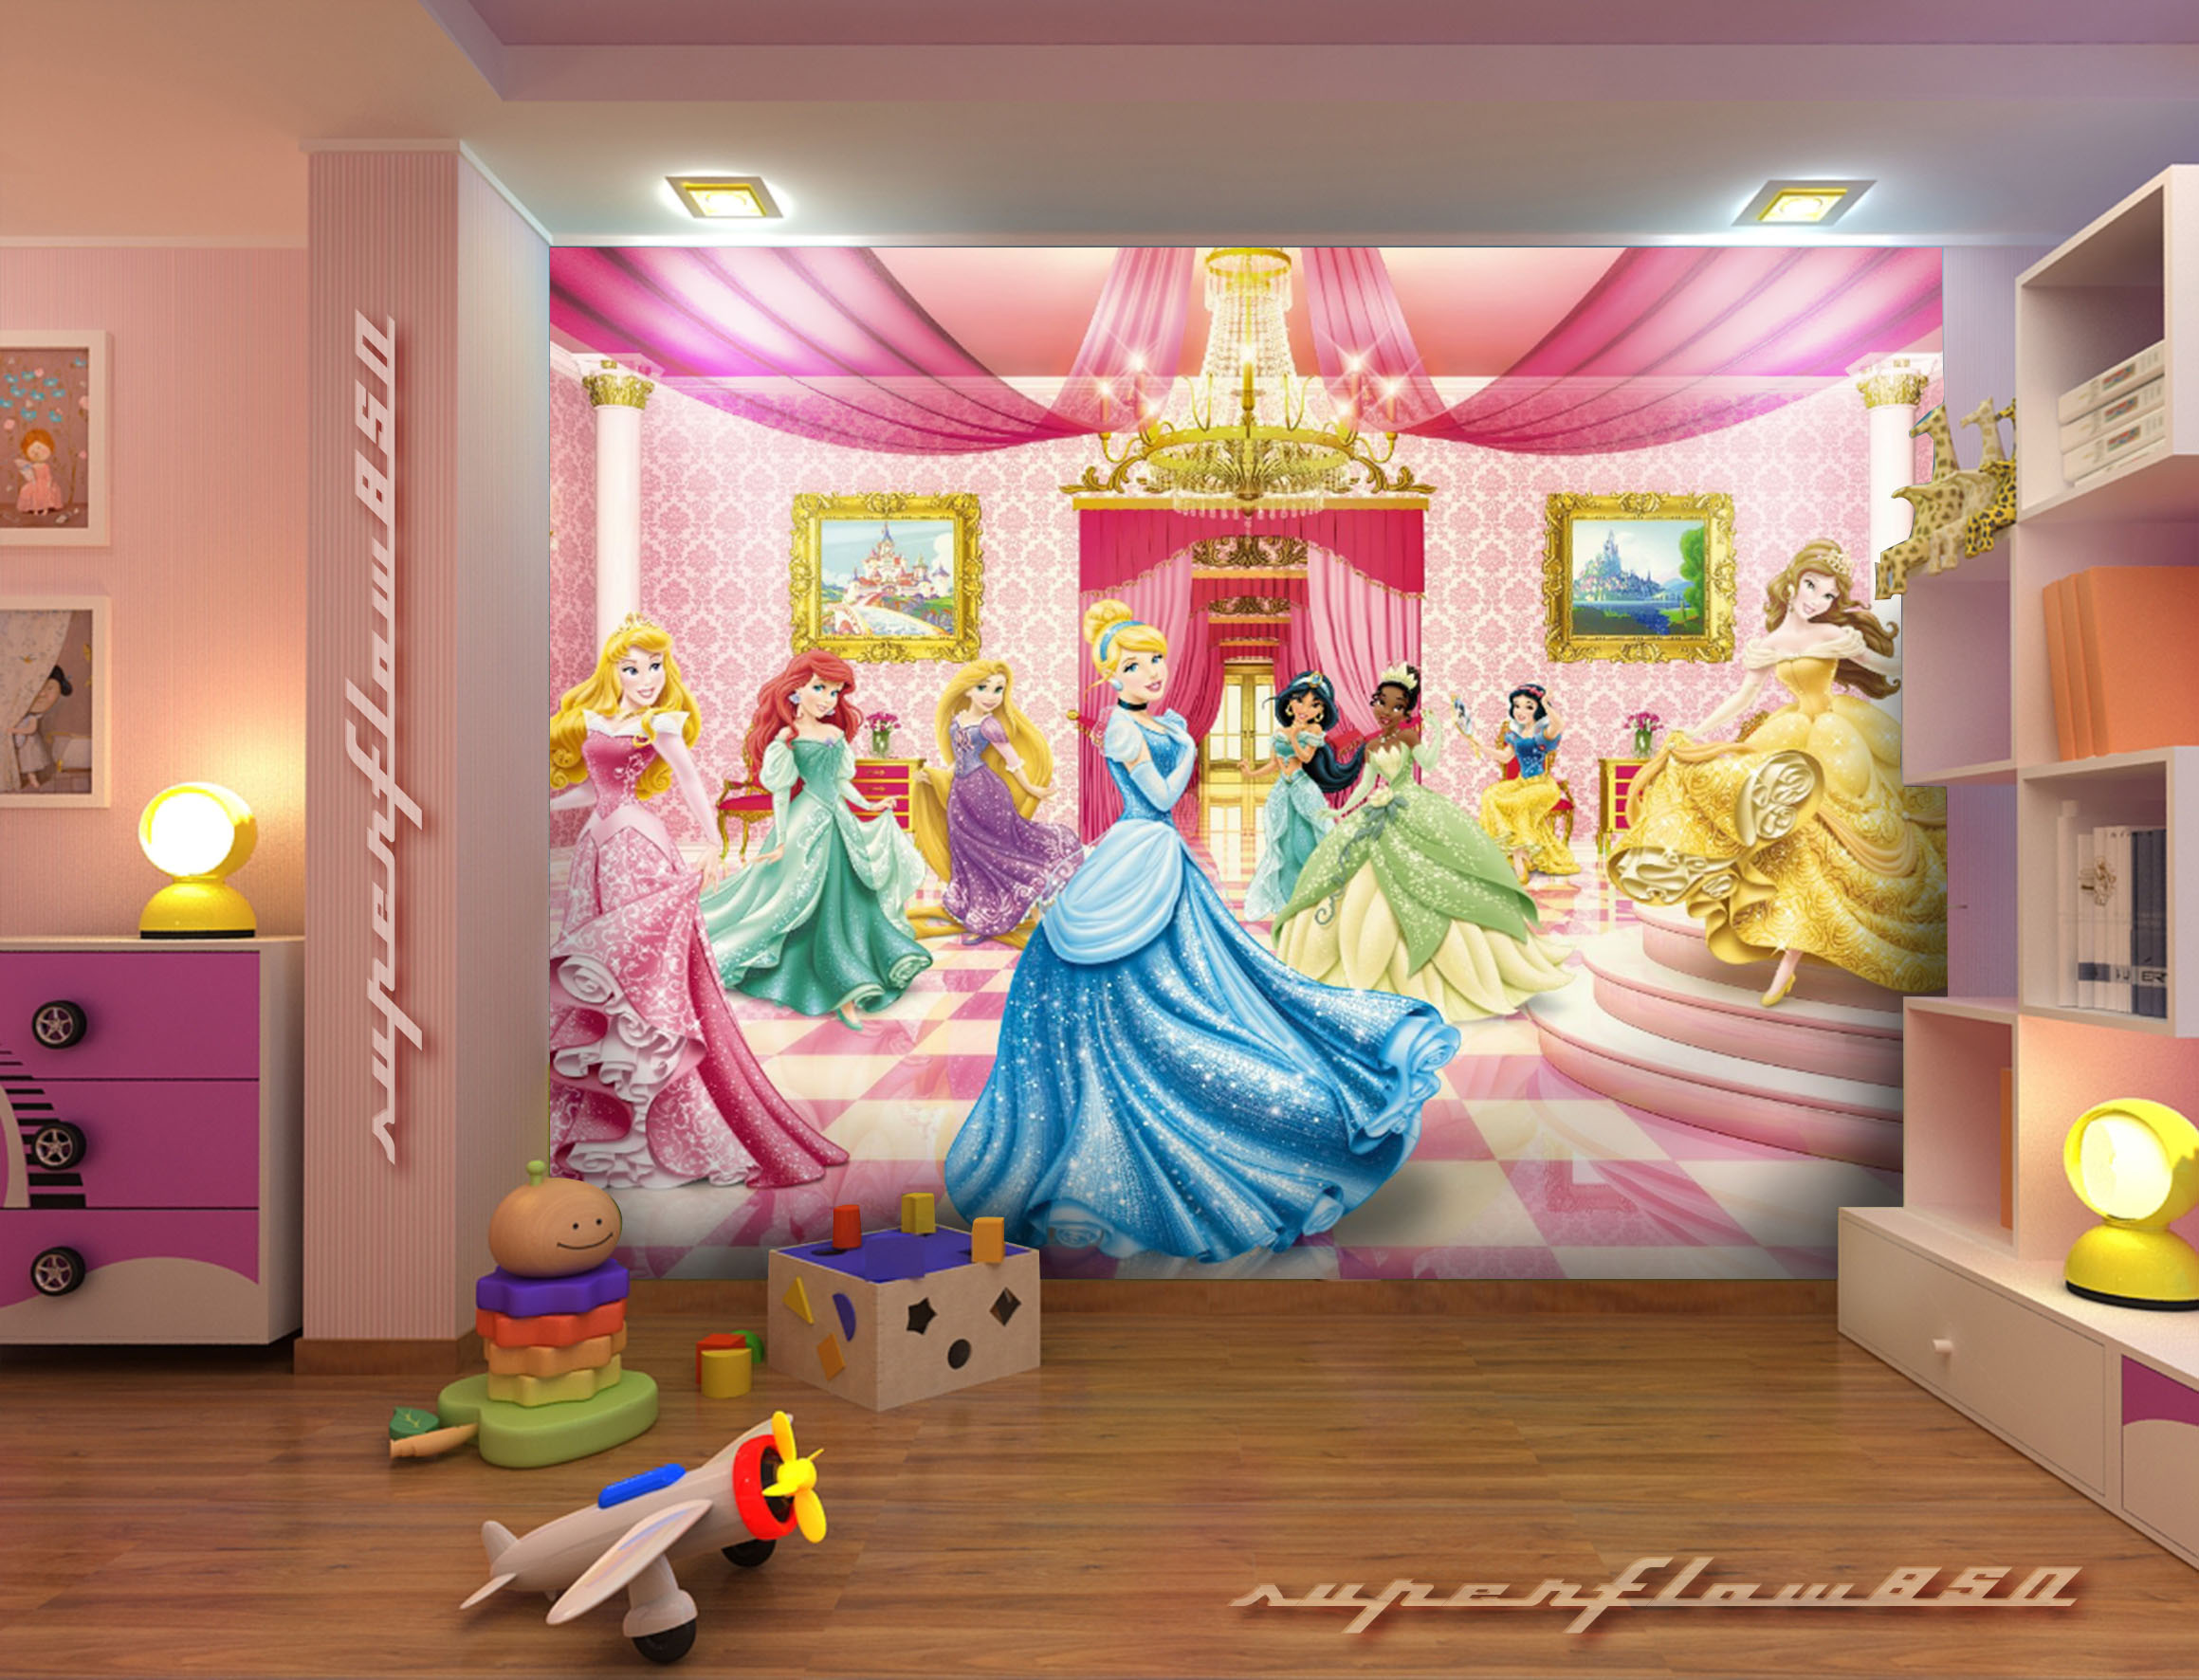 Princess ballroom disney photo wallpaper wall mural kids for Disney mural wallpaper